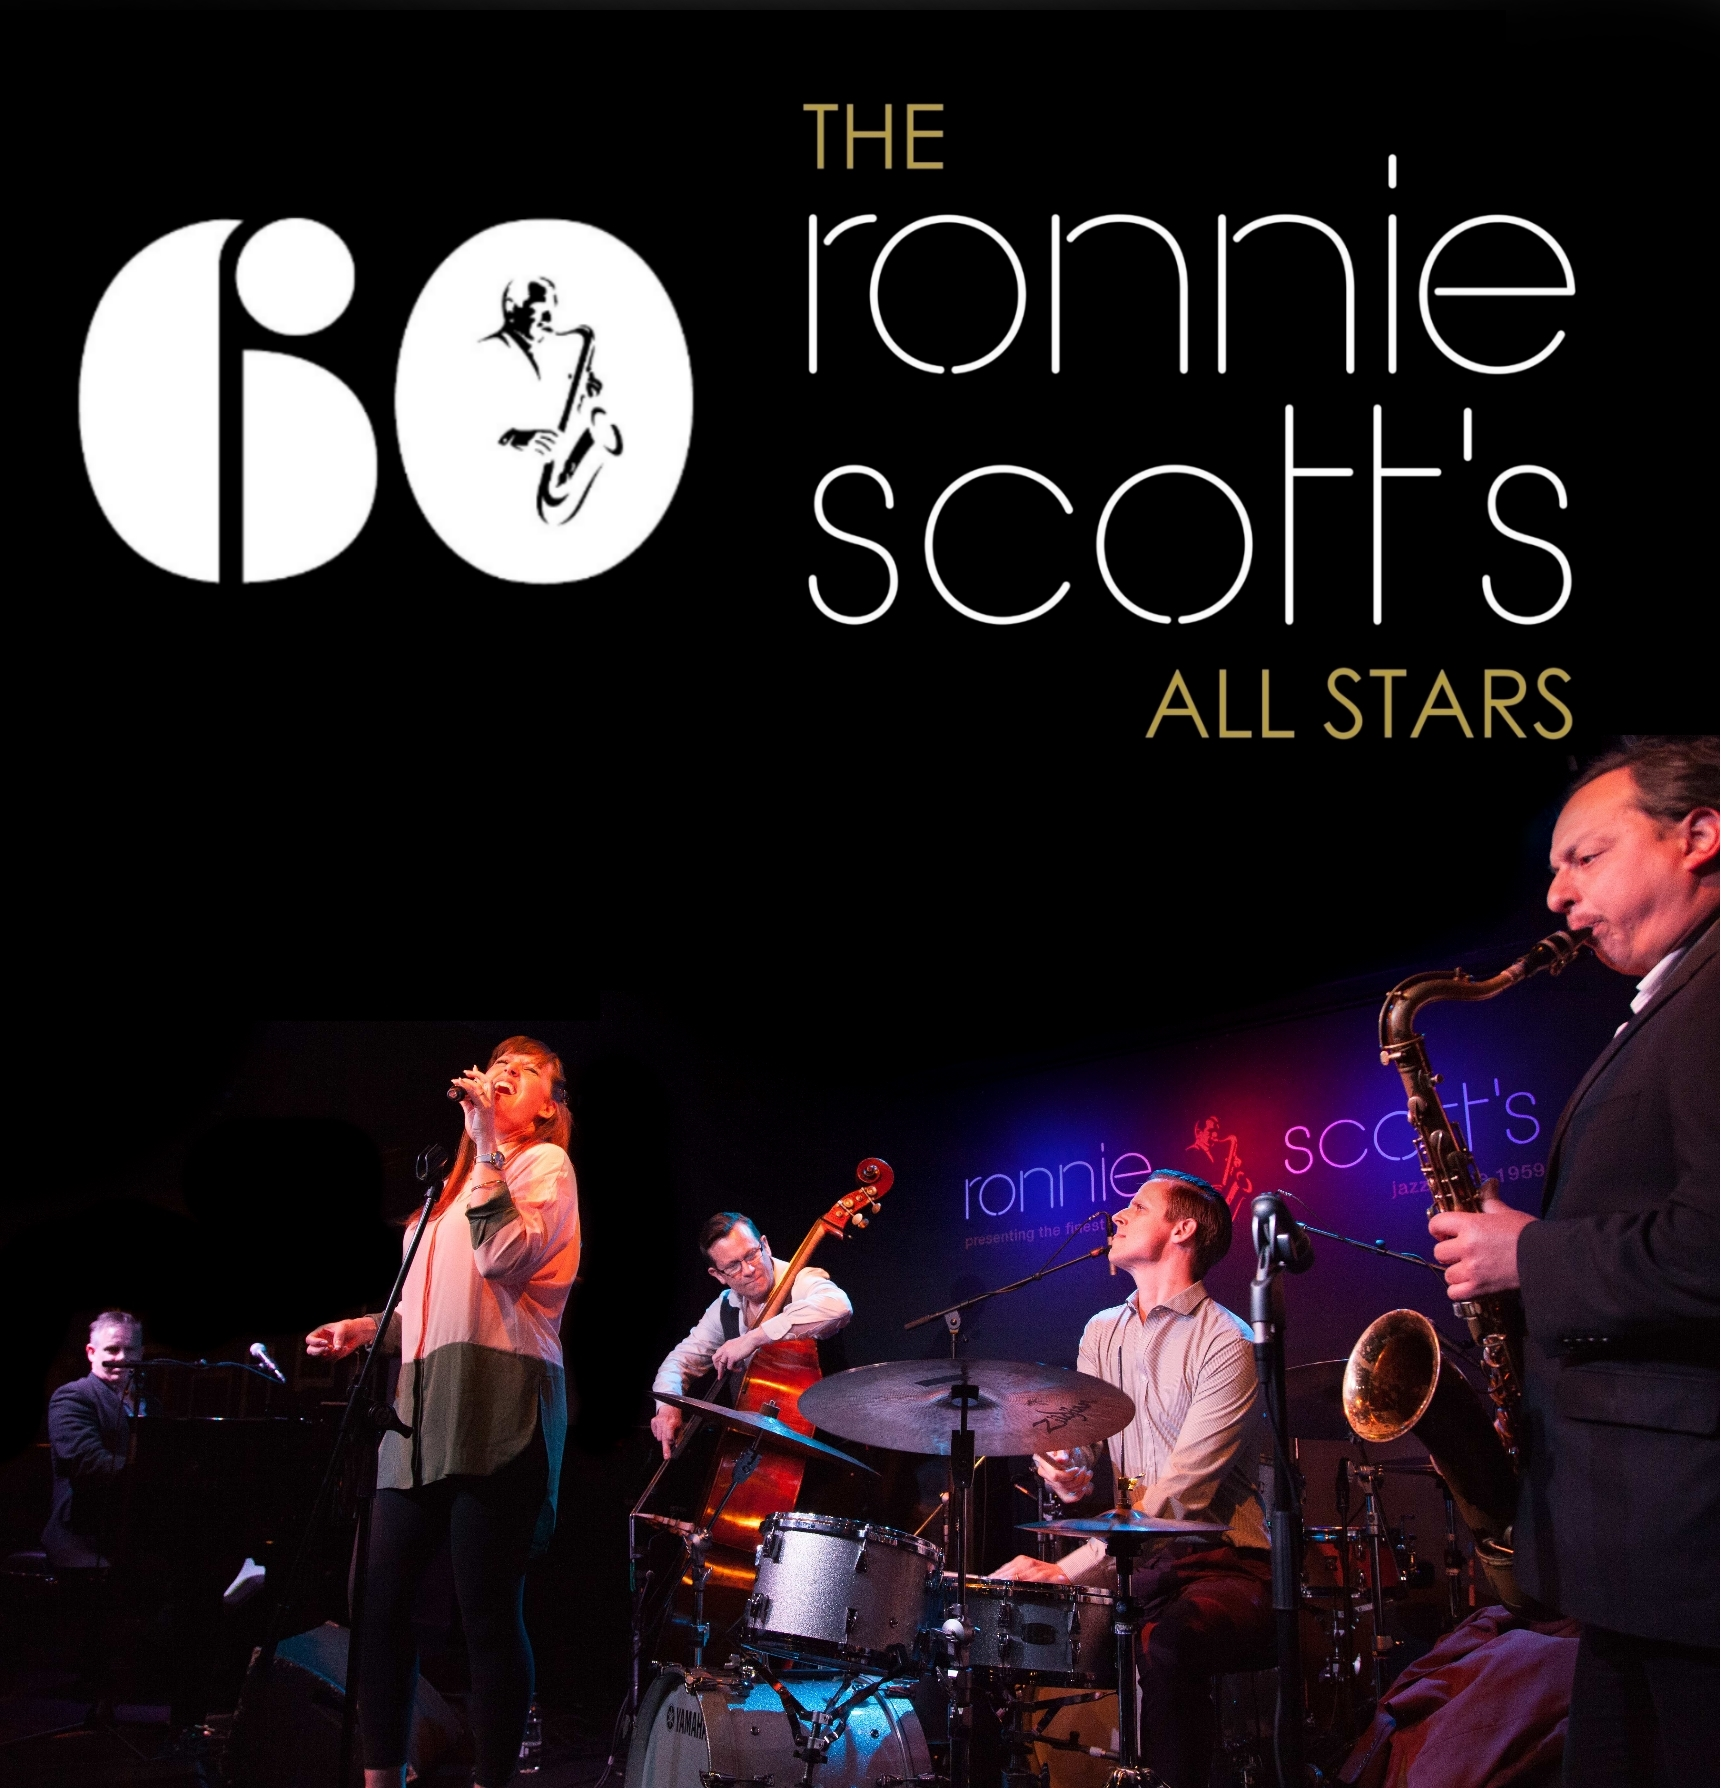 Wed 20 Nov - The Ronnie Scott